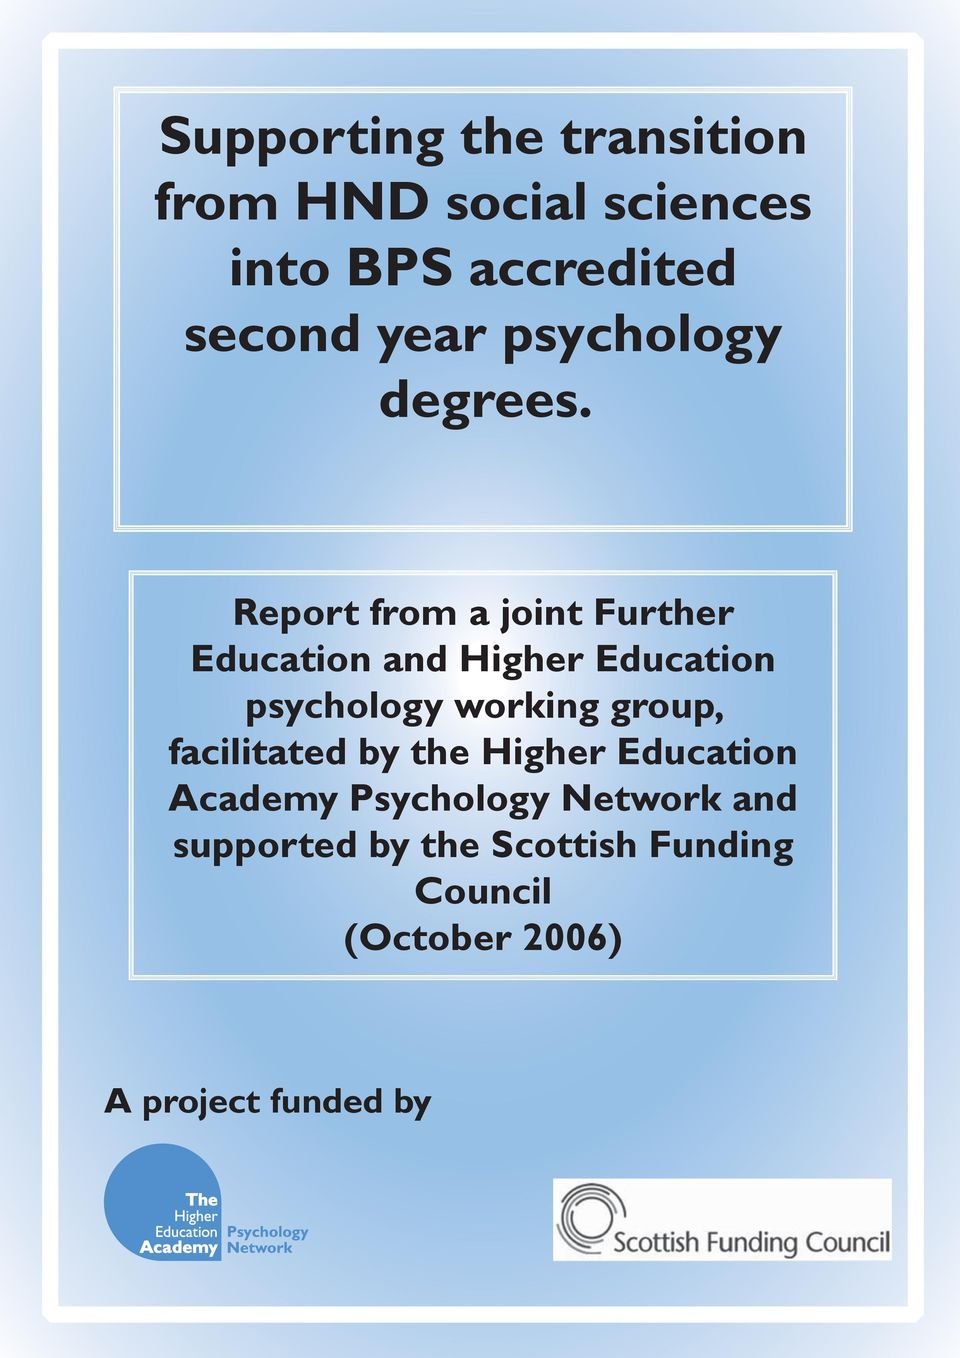 Report from a joint Further Education and Higher Education psychology working